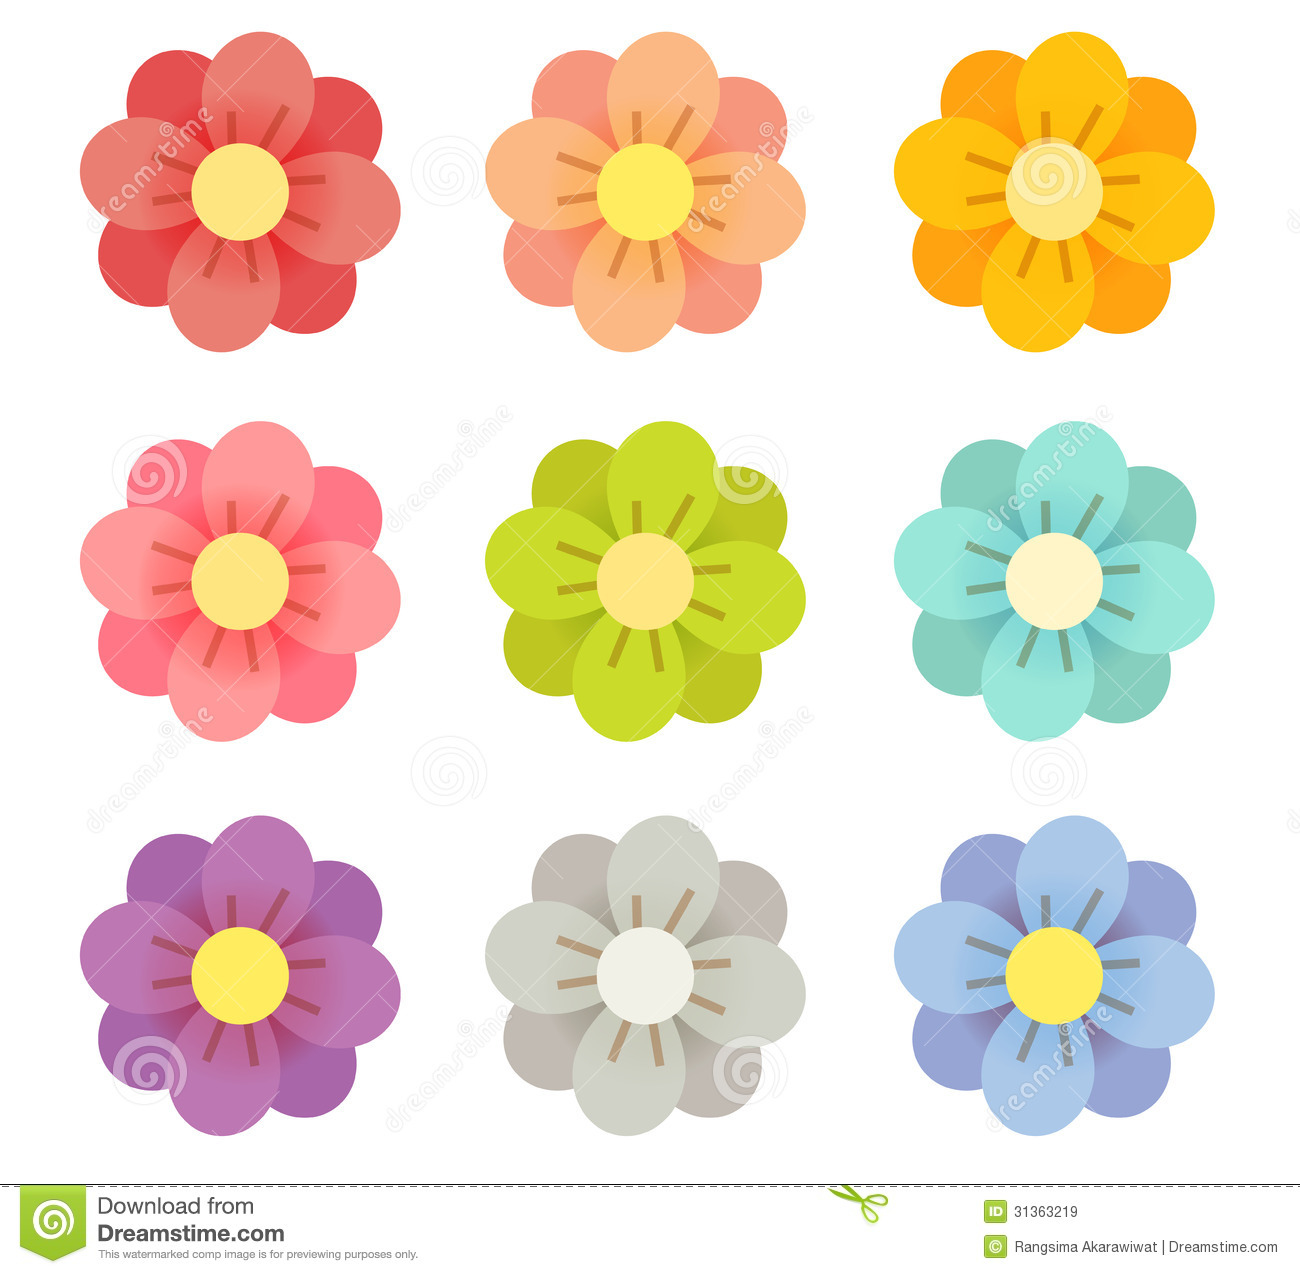 Cute Flowers Royalty Free Stock Images - Image: 31363219